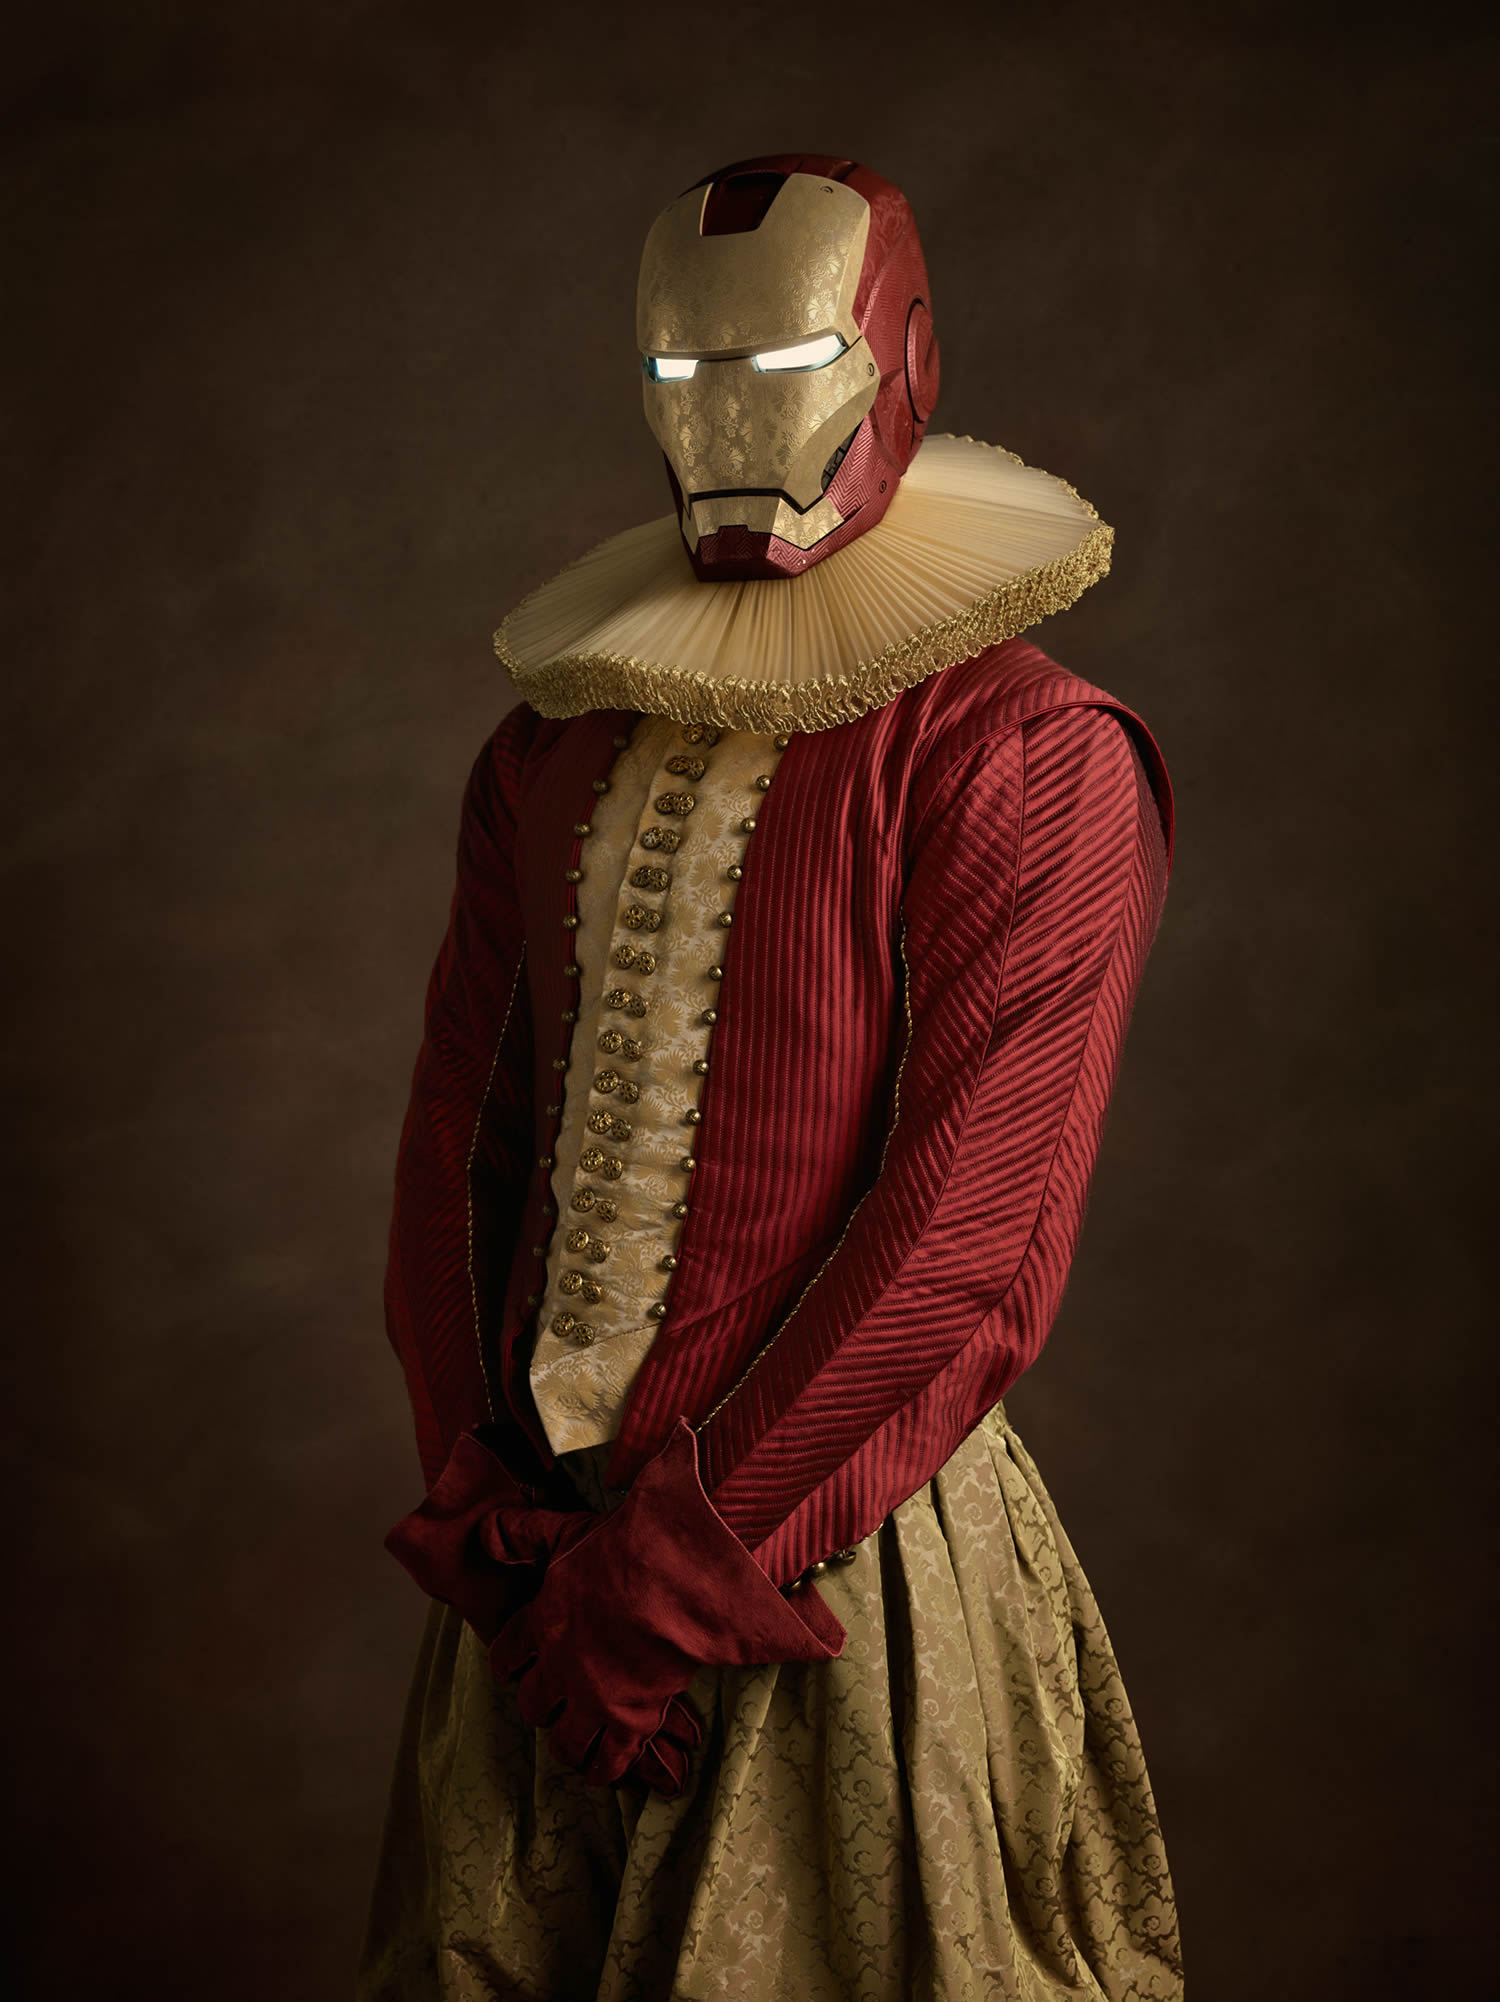 iron man, photo by sasha goldberger